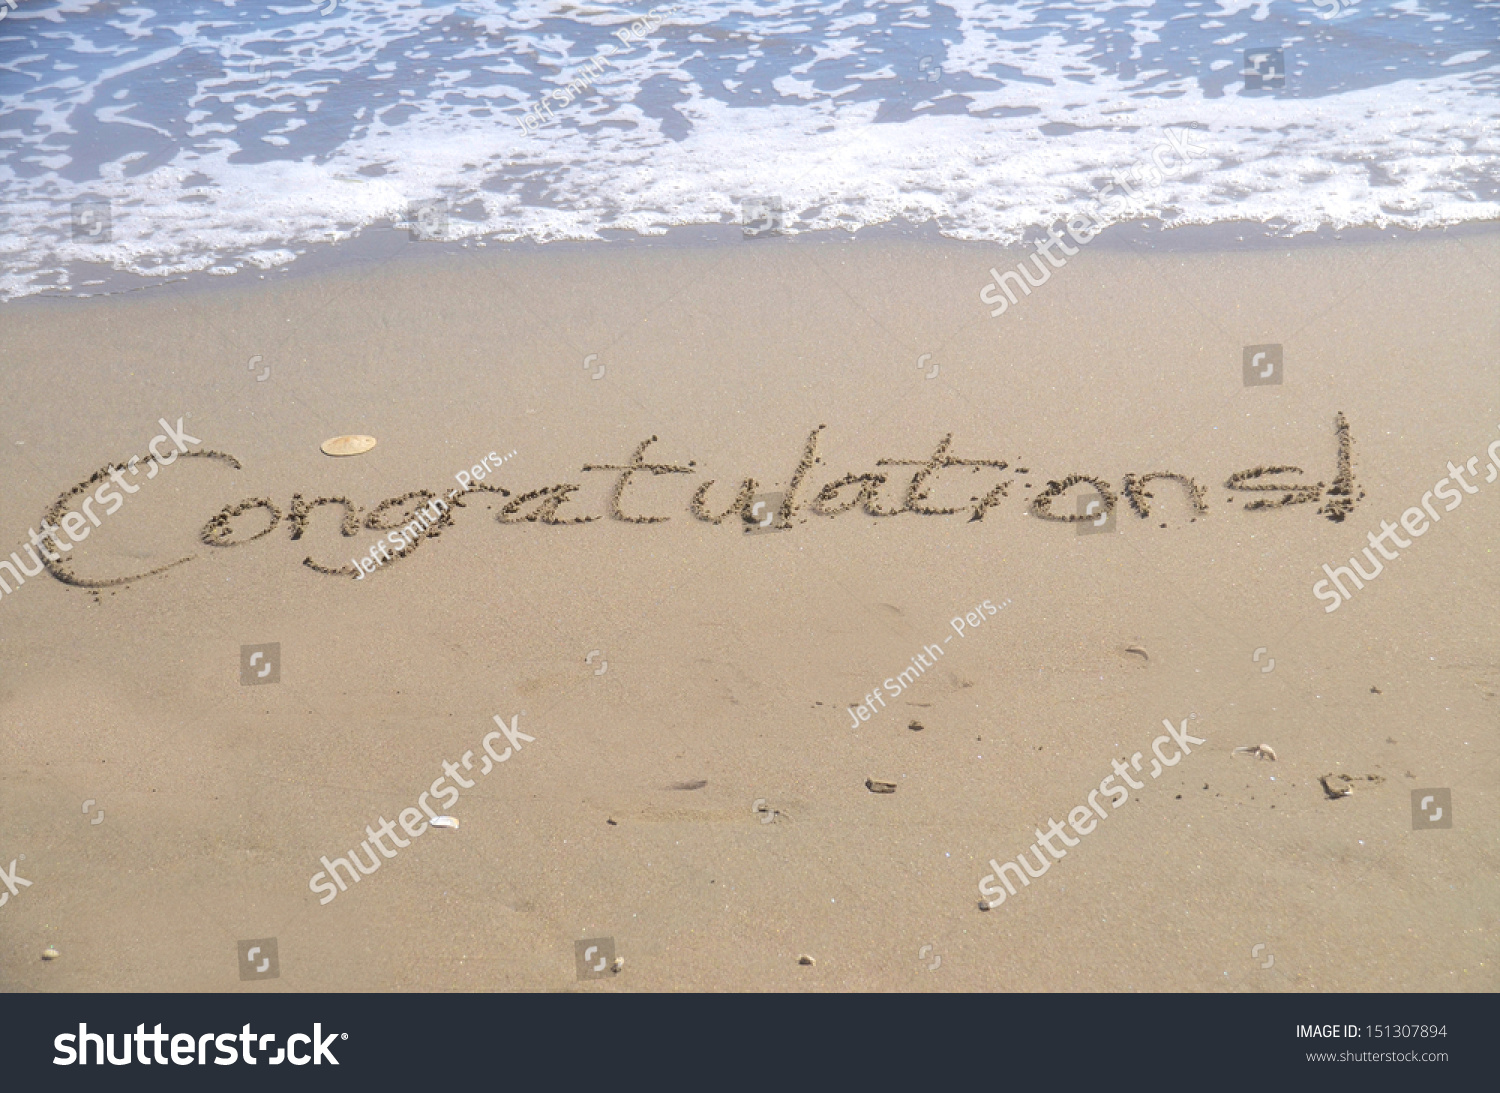 Congratulations A Message Written In The Sand At The Written In Your The